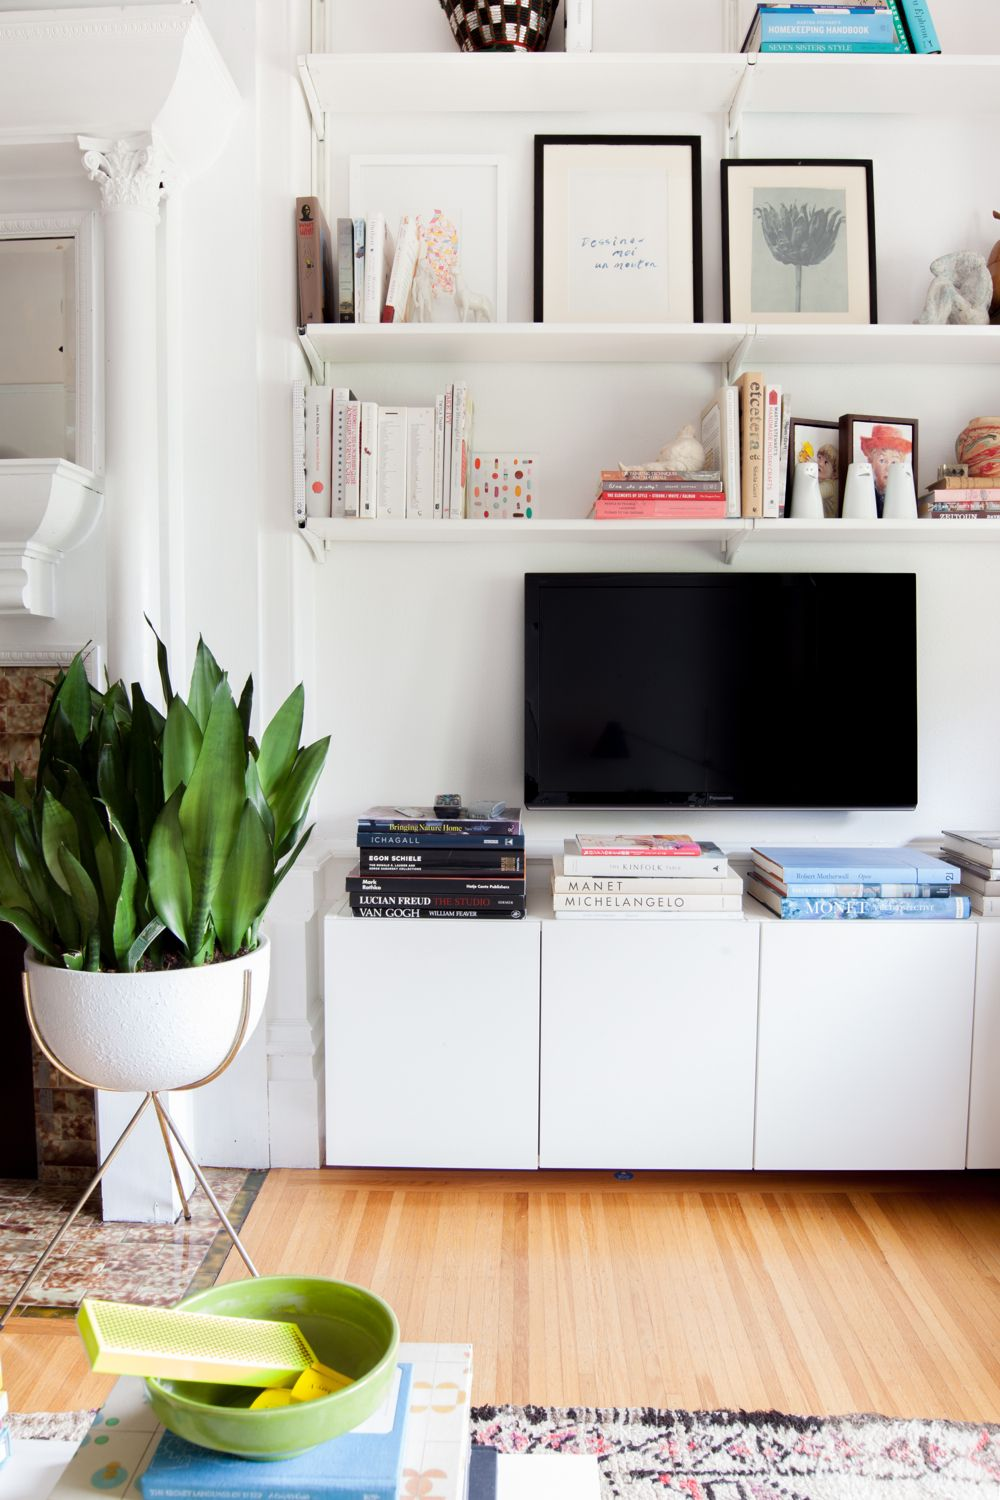 love these shelves and the cabinets looks